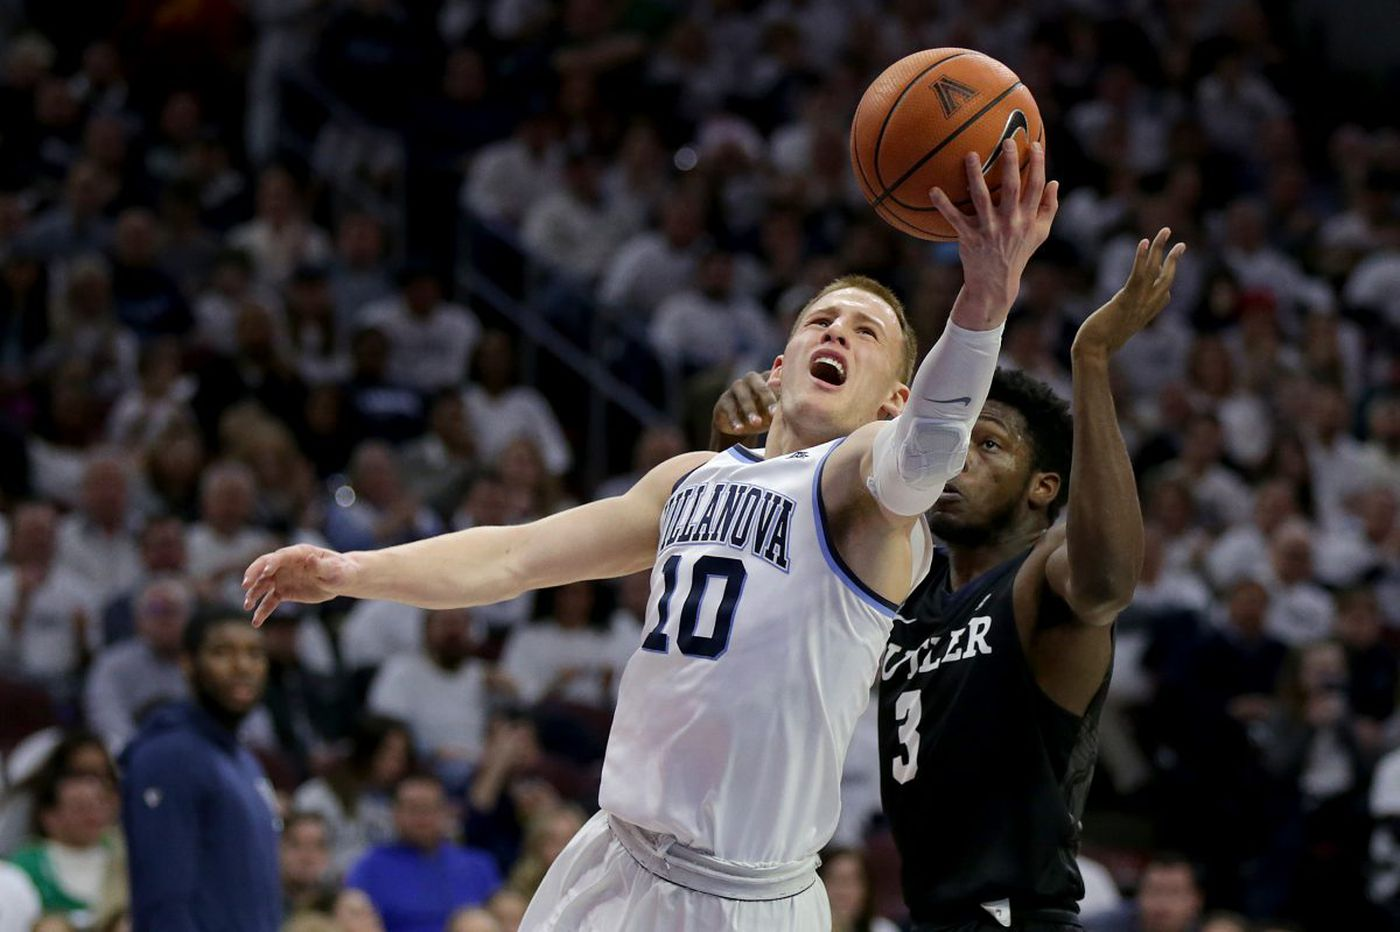 Villanova's Donte DiVincenzo wins Big East Sixth Man award